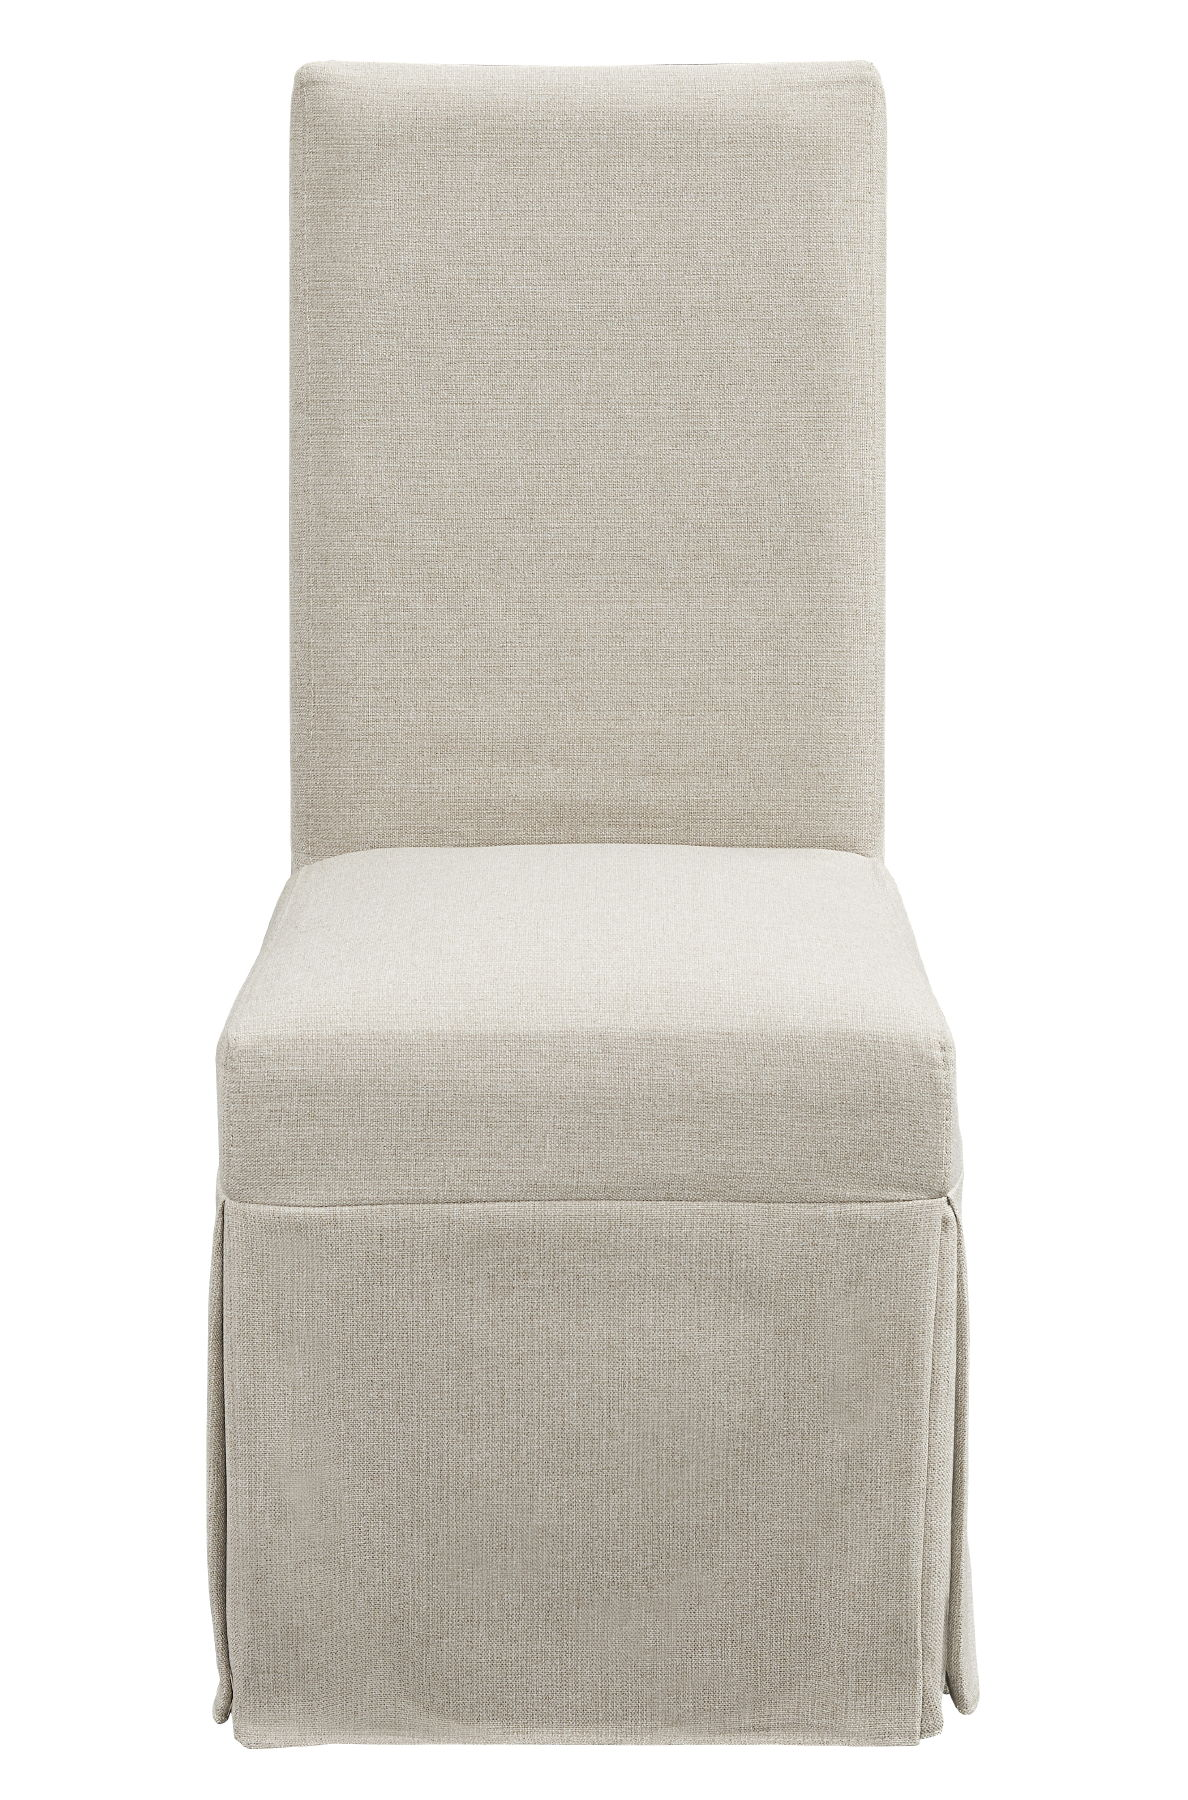 2 Progressive Furniture Muses Off White Linen Upholstered Parsons Chairs